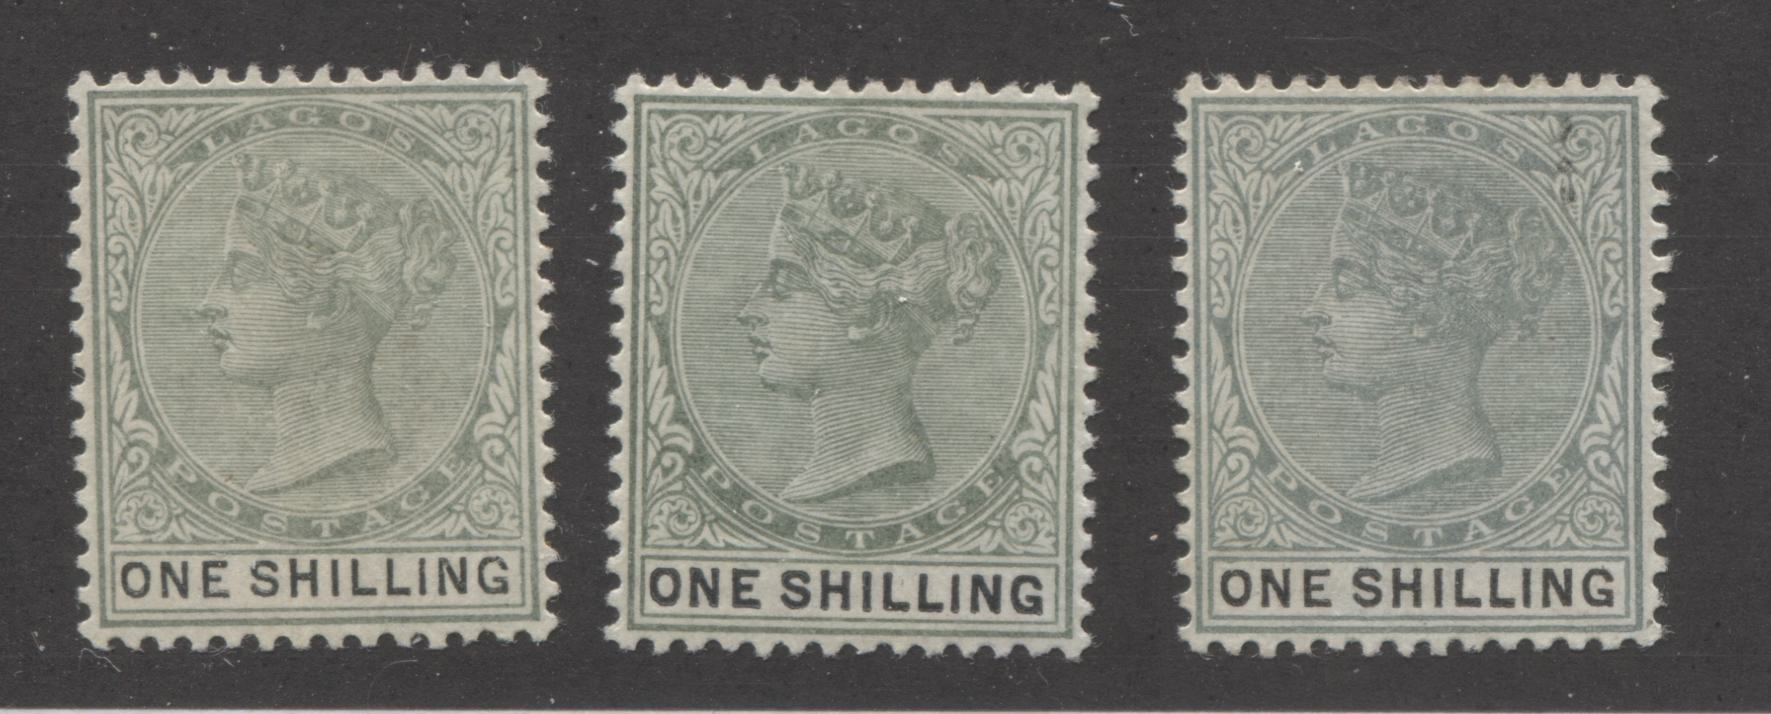 Lagos SG#38, 38a 1/- Dull Green and Bluish Green and Black, Queen Victoria, 1887-1902 Bicoloured Keyplate Issue, Three Very Fine Mint OG Examples, Each a Different Printing Brixton Chrome